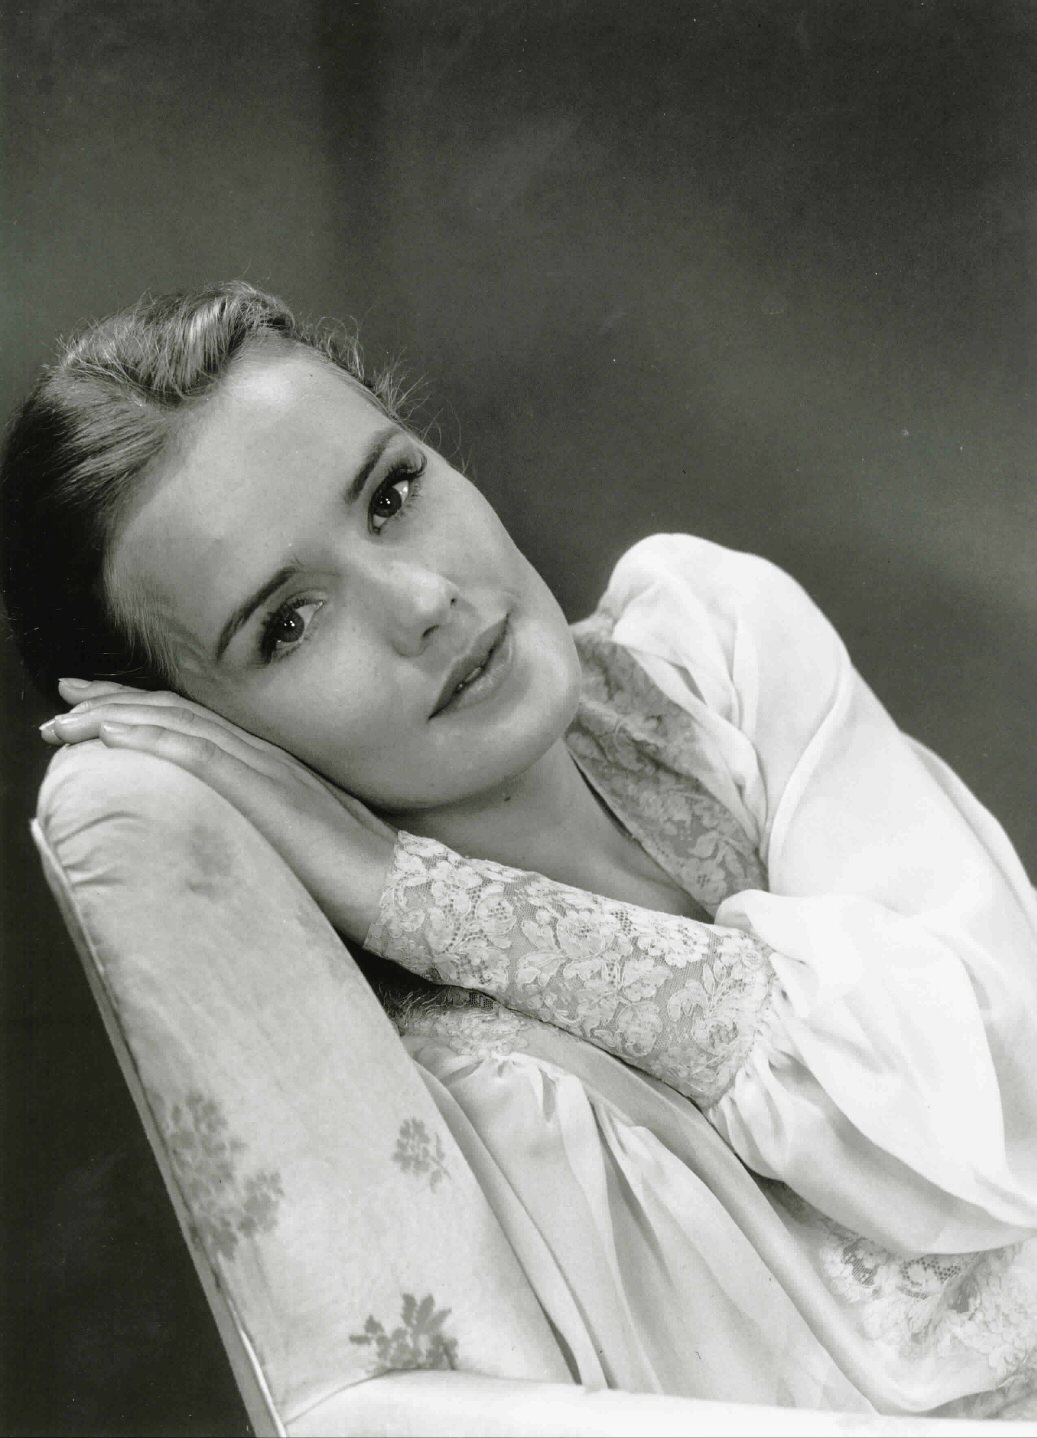 frances farmer will have her